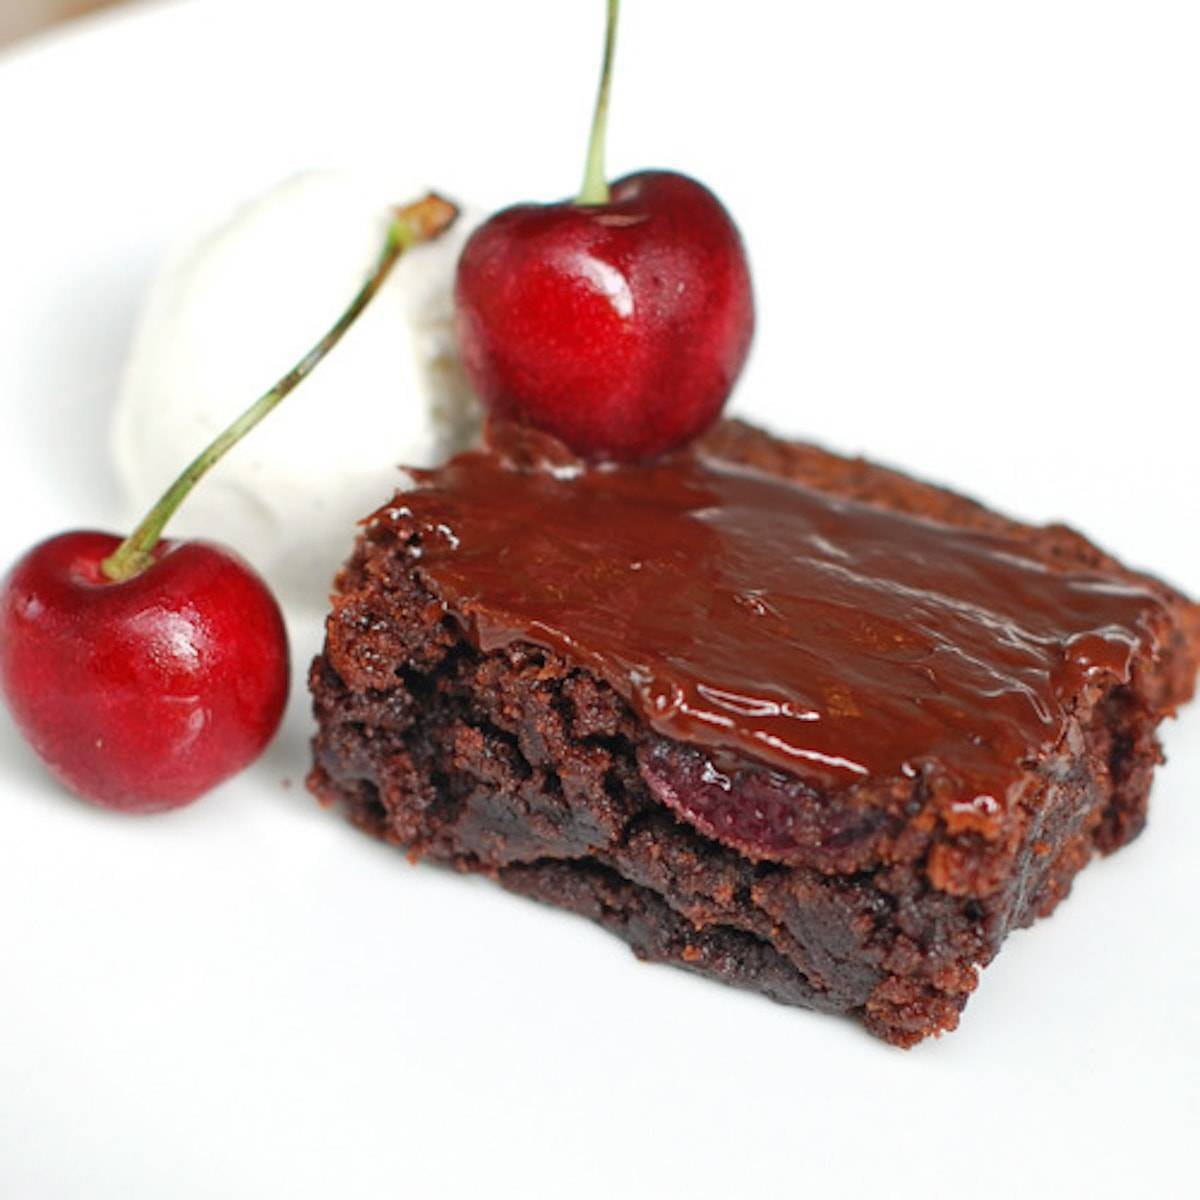 Roasted cherry brownie with ice cream and cherries.